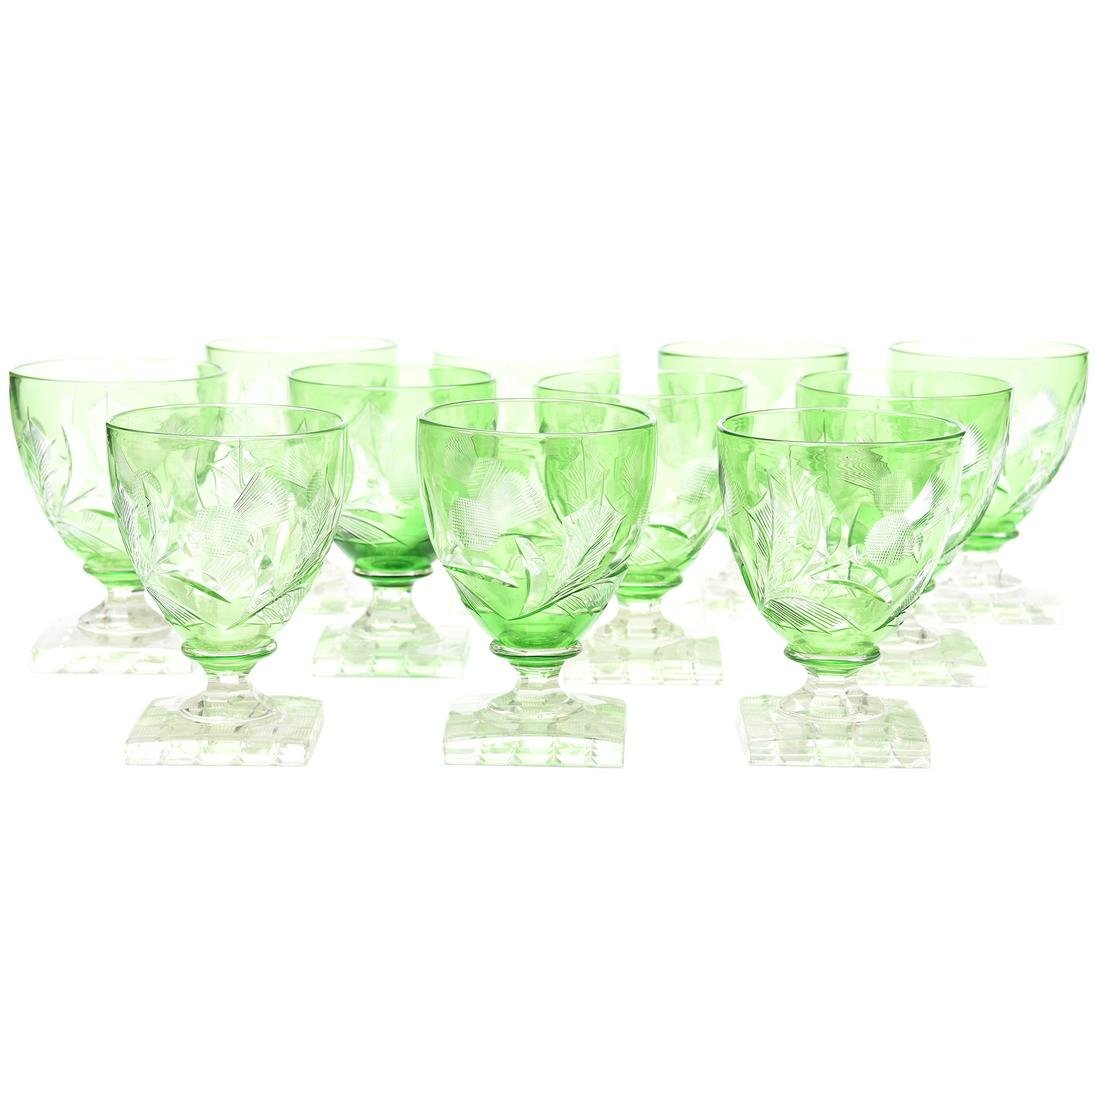 (11) Steuben #6338 Green Cut to Clear Water Goblets